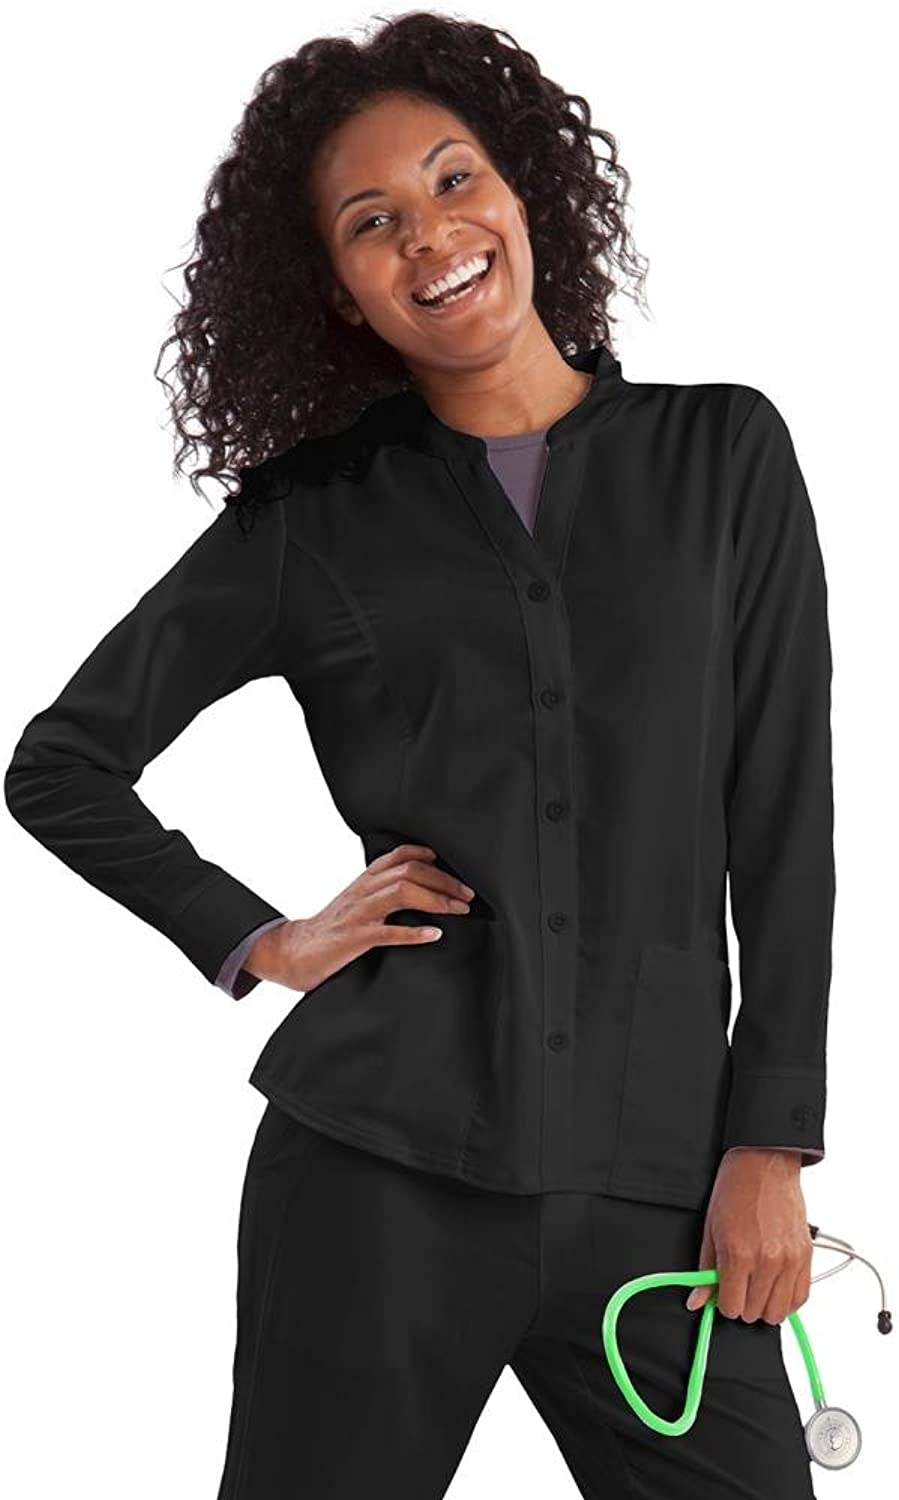 Purple Label Women's  Dana  5044 Button Front Scrub Jacket by Healing Hands Scrubs Black Small